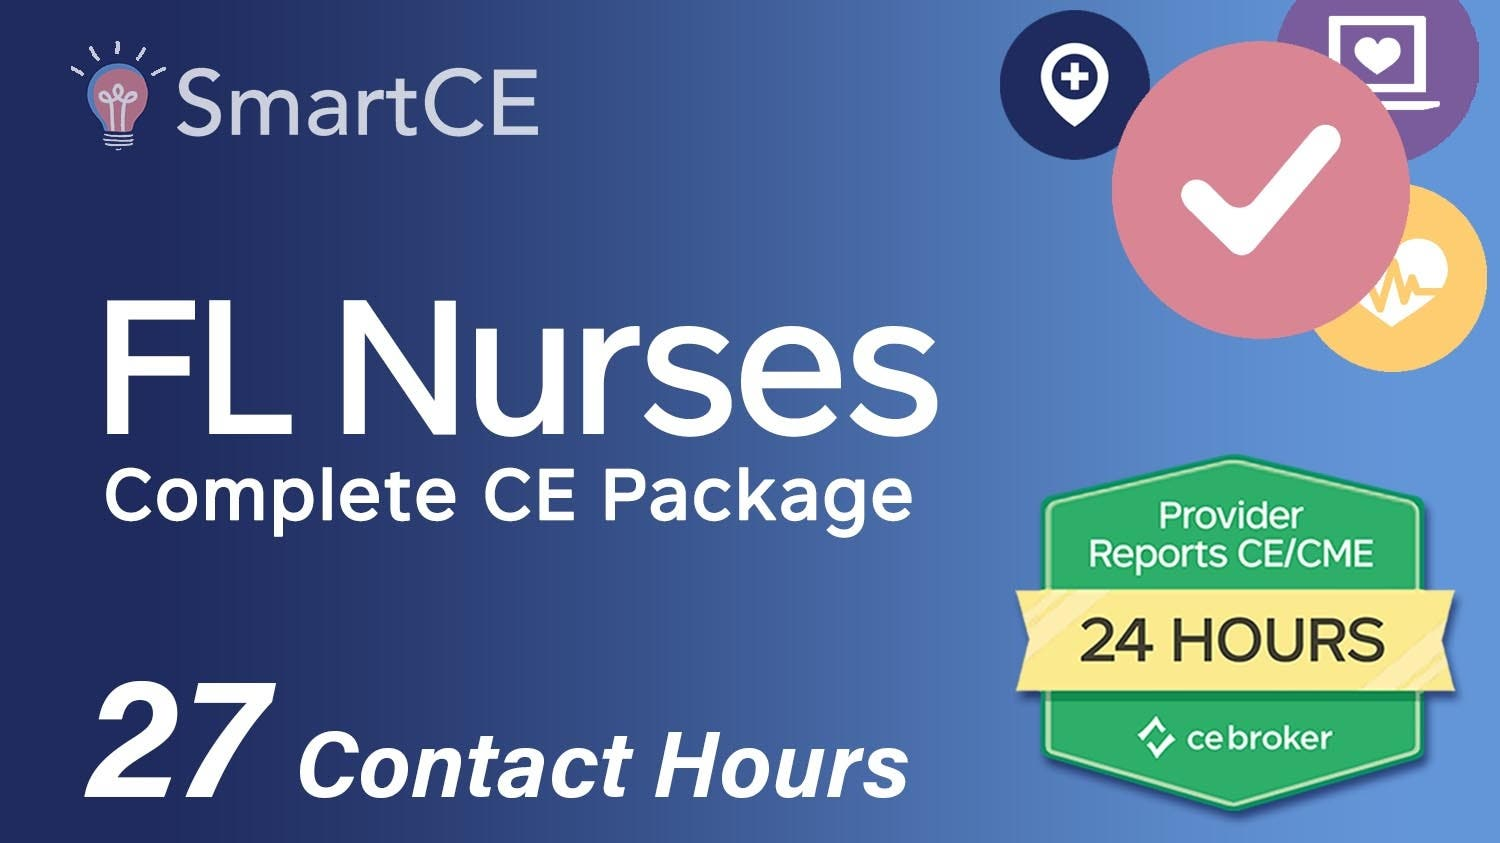 Complete Renewal Package for Florida Nurses: 27 Contact Hours /20-619940/20-571431/20-605534/20-571425/20-577091/20-605530/20-581291/20-581337/20-581325/20-576927/20-605536